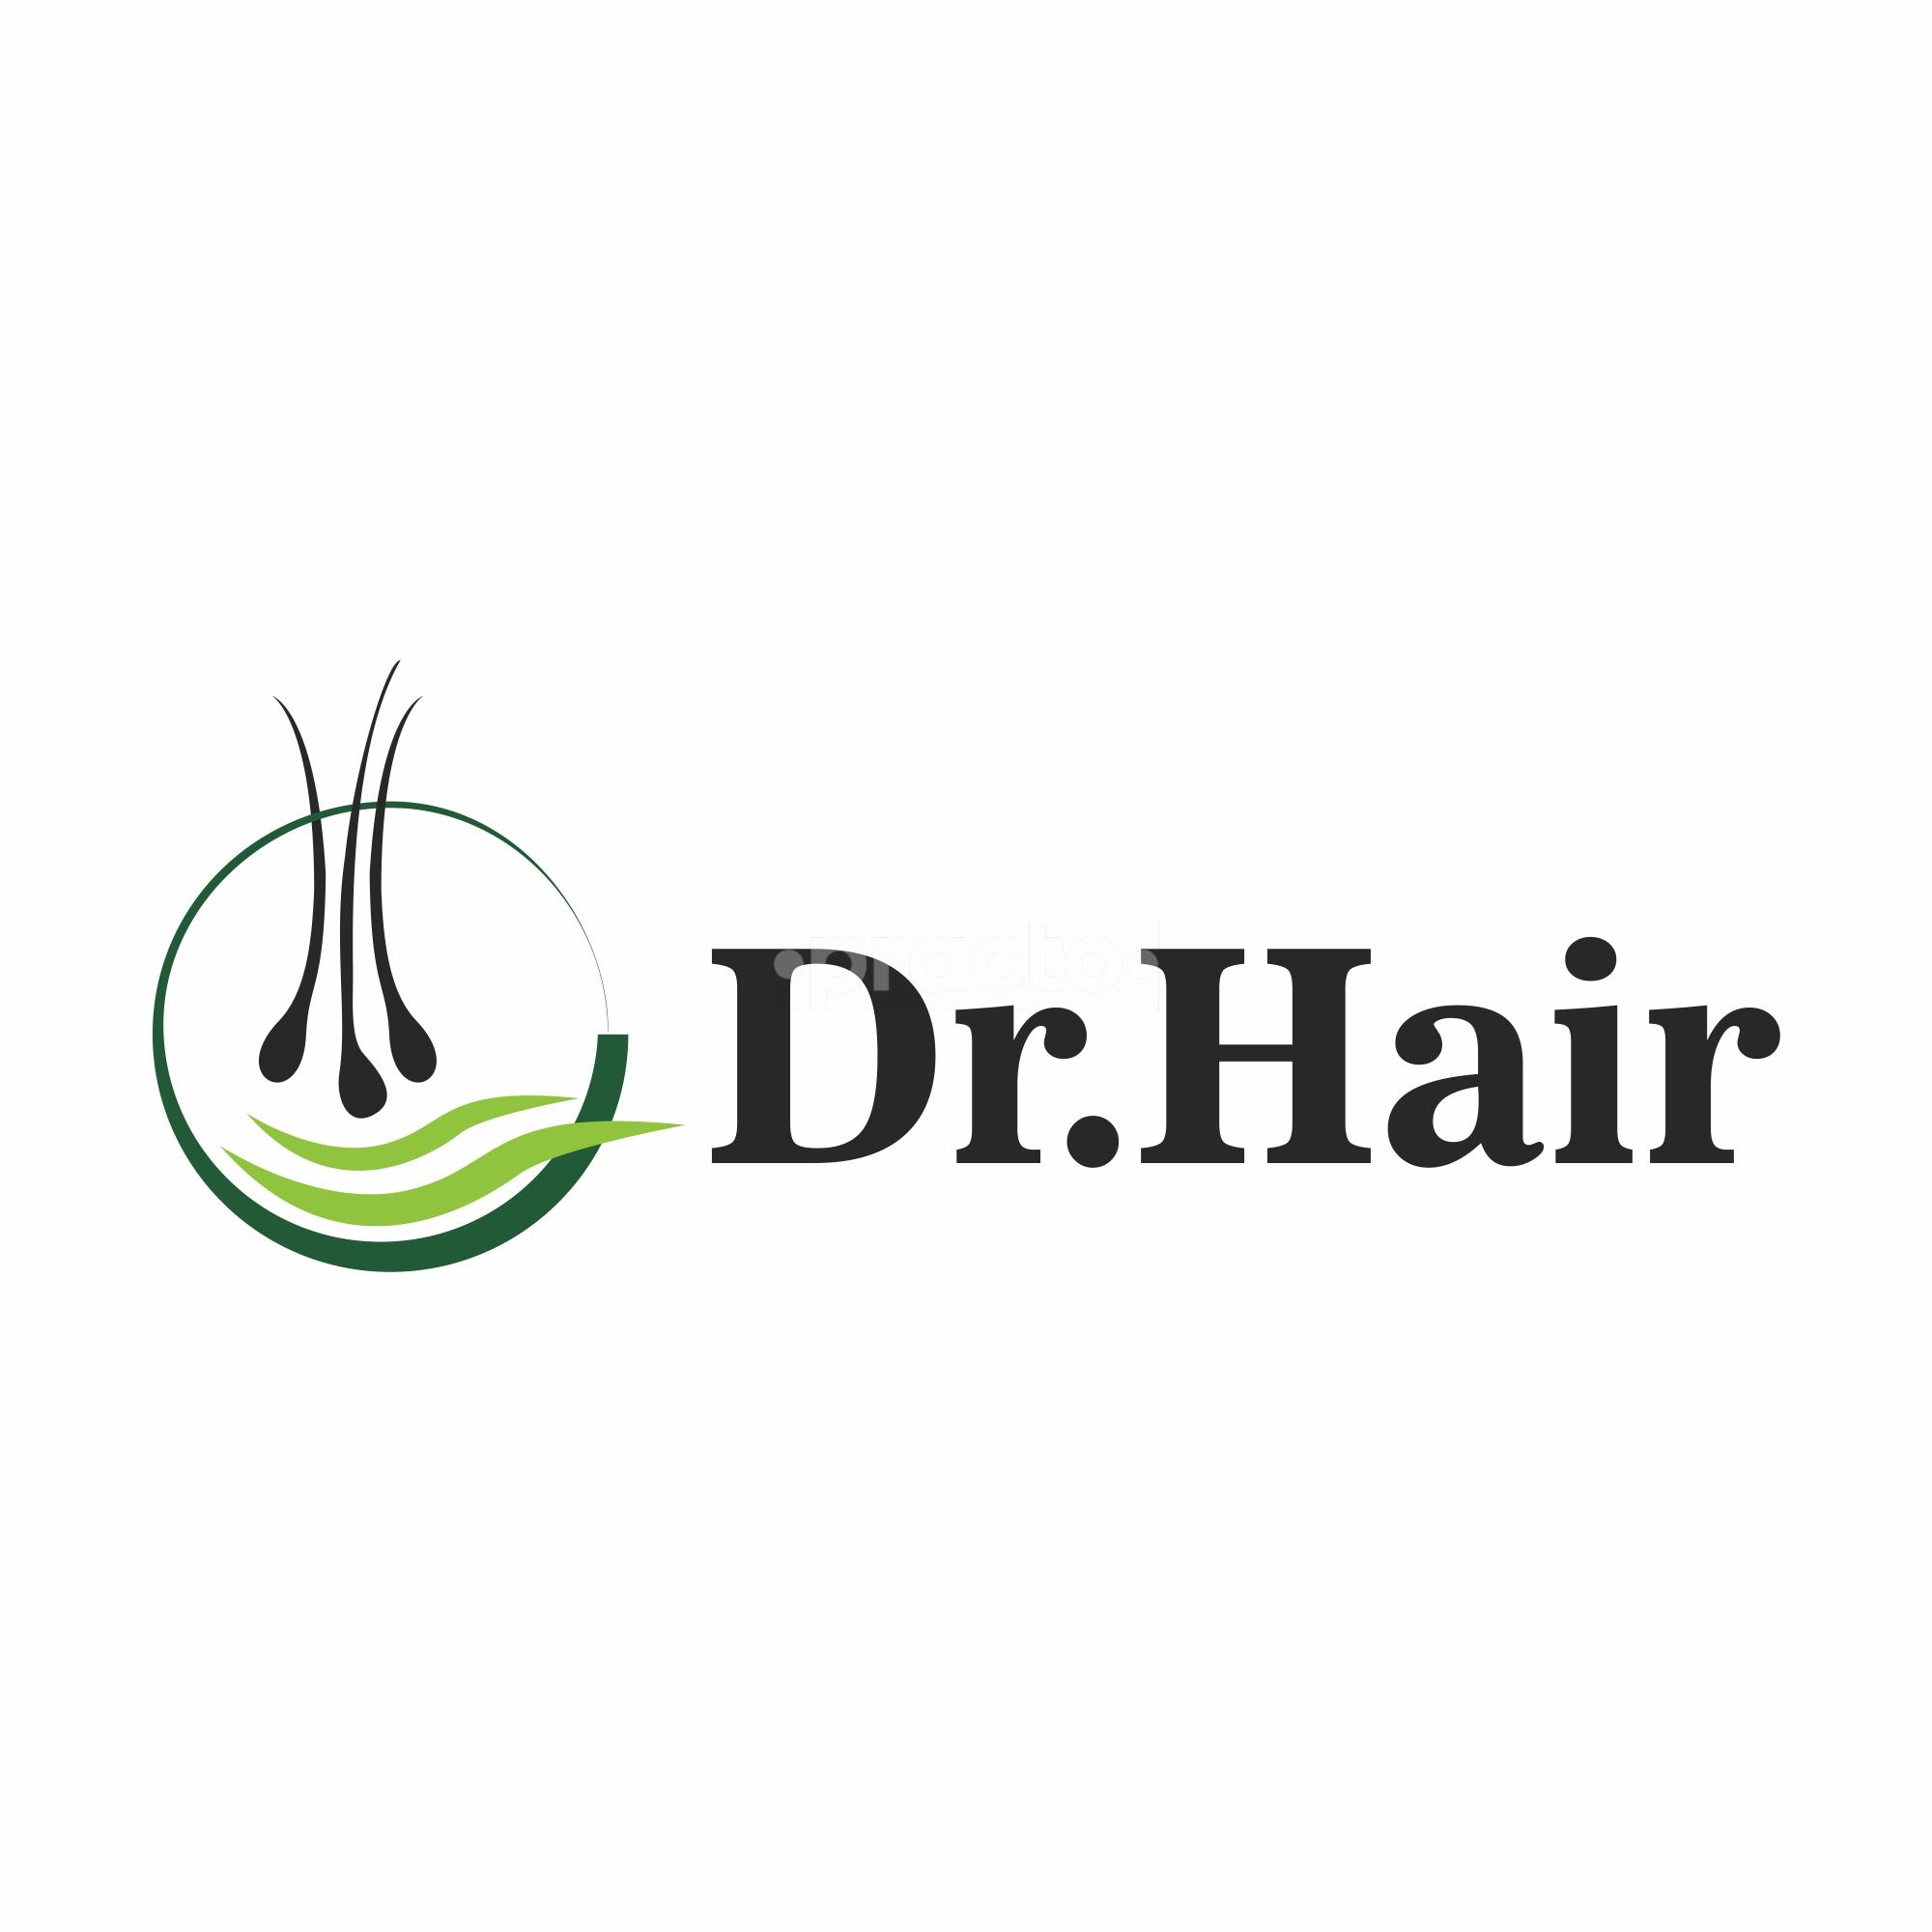 Dr. Hair India - Hair Transplant, Cosmetic and Laser Clinic